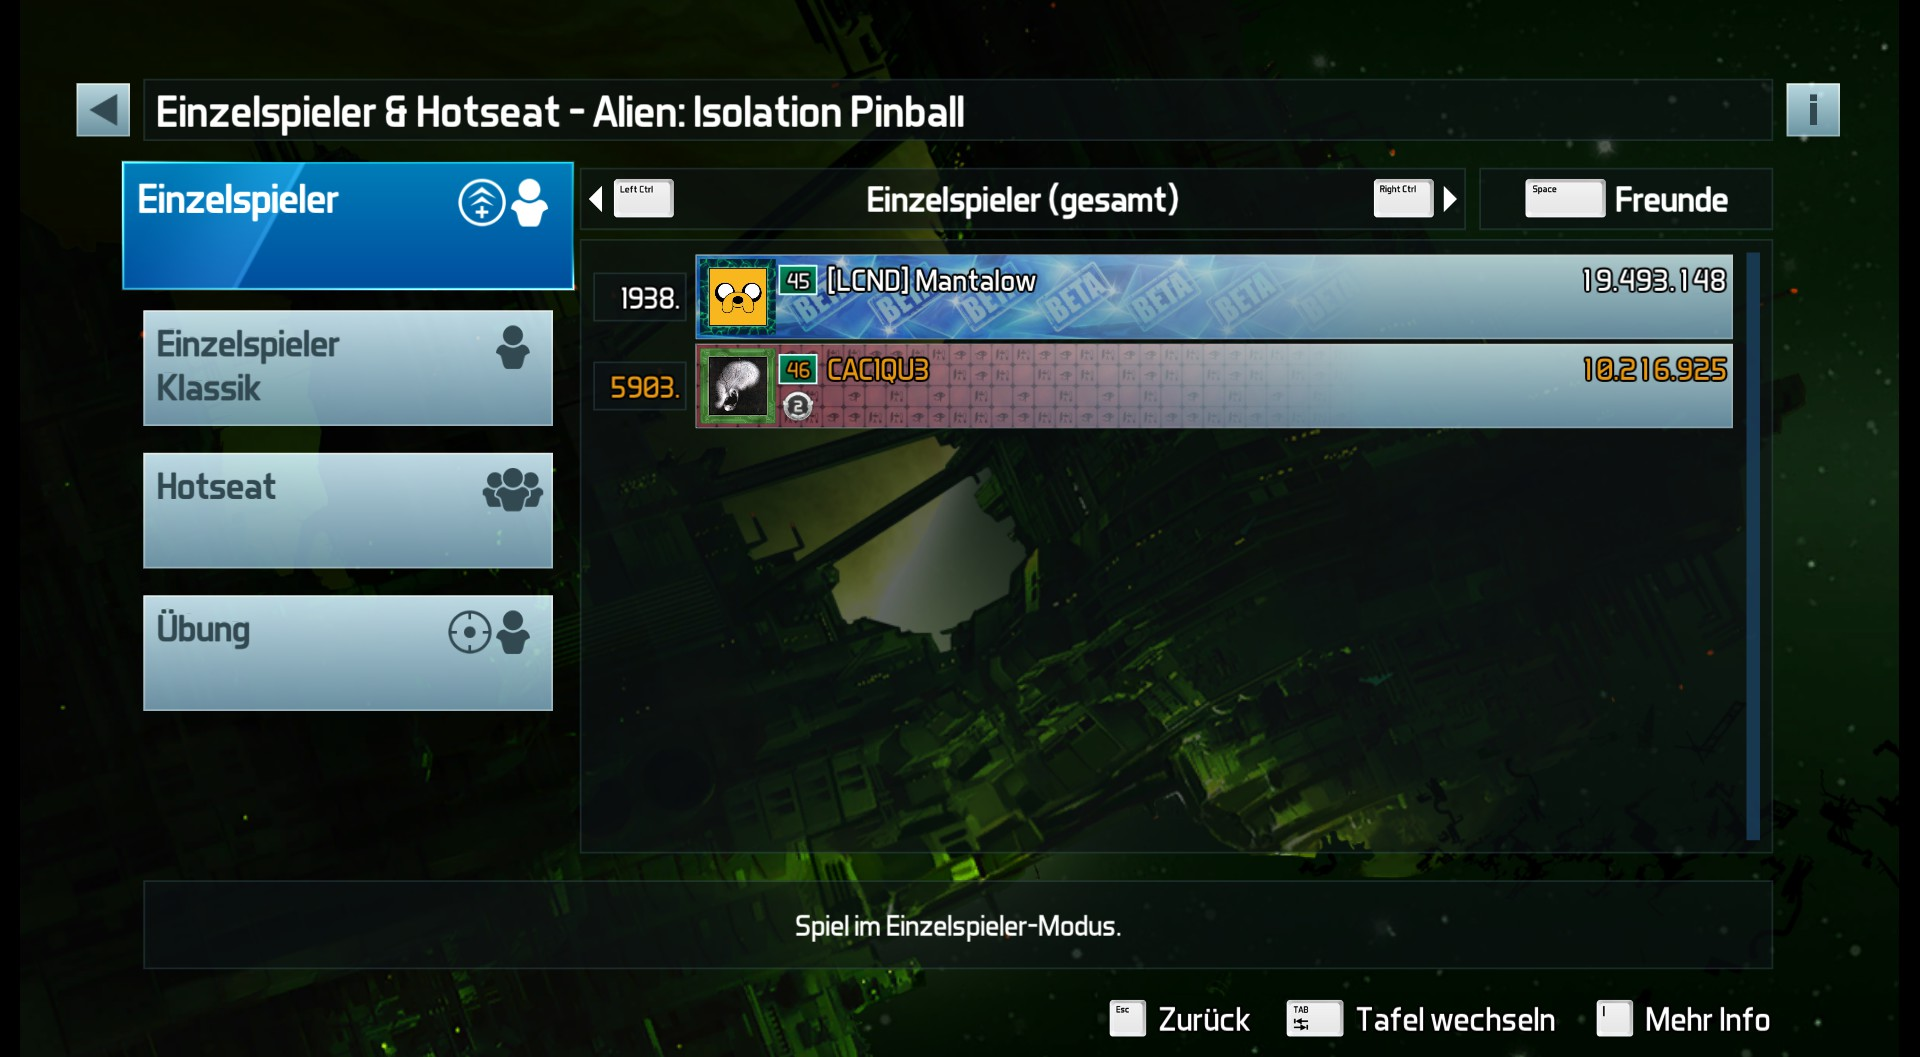 CAC1QU3: Pinball FX3: Alien: Isolation Pinball (PC) 10,216,925 points on 2019-03-22 07:18:28